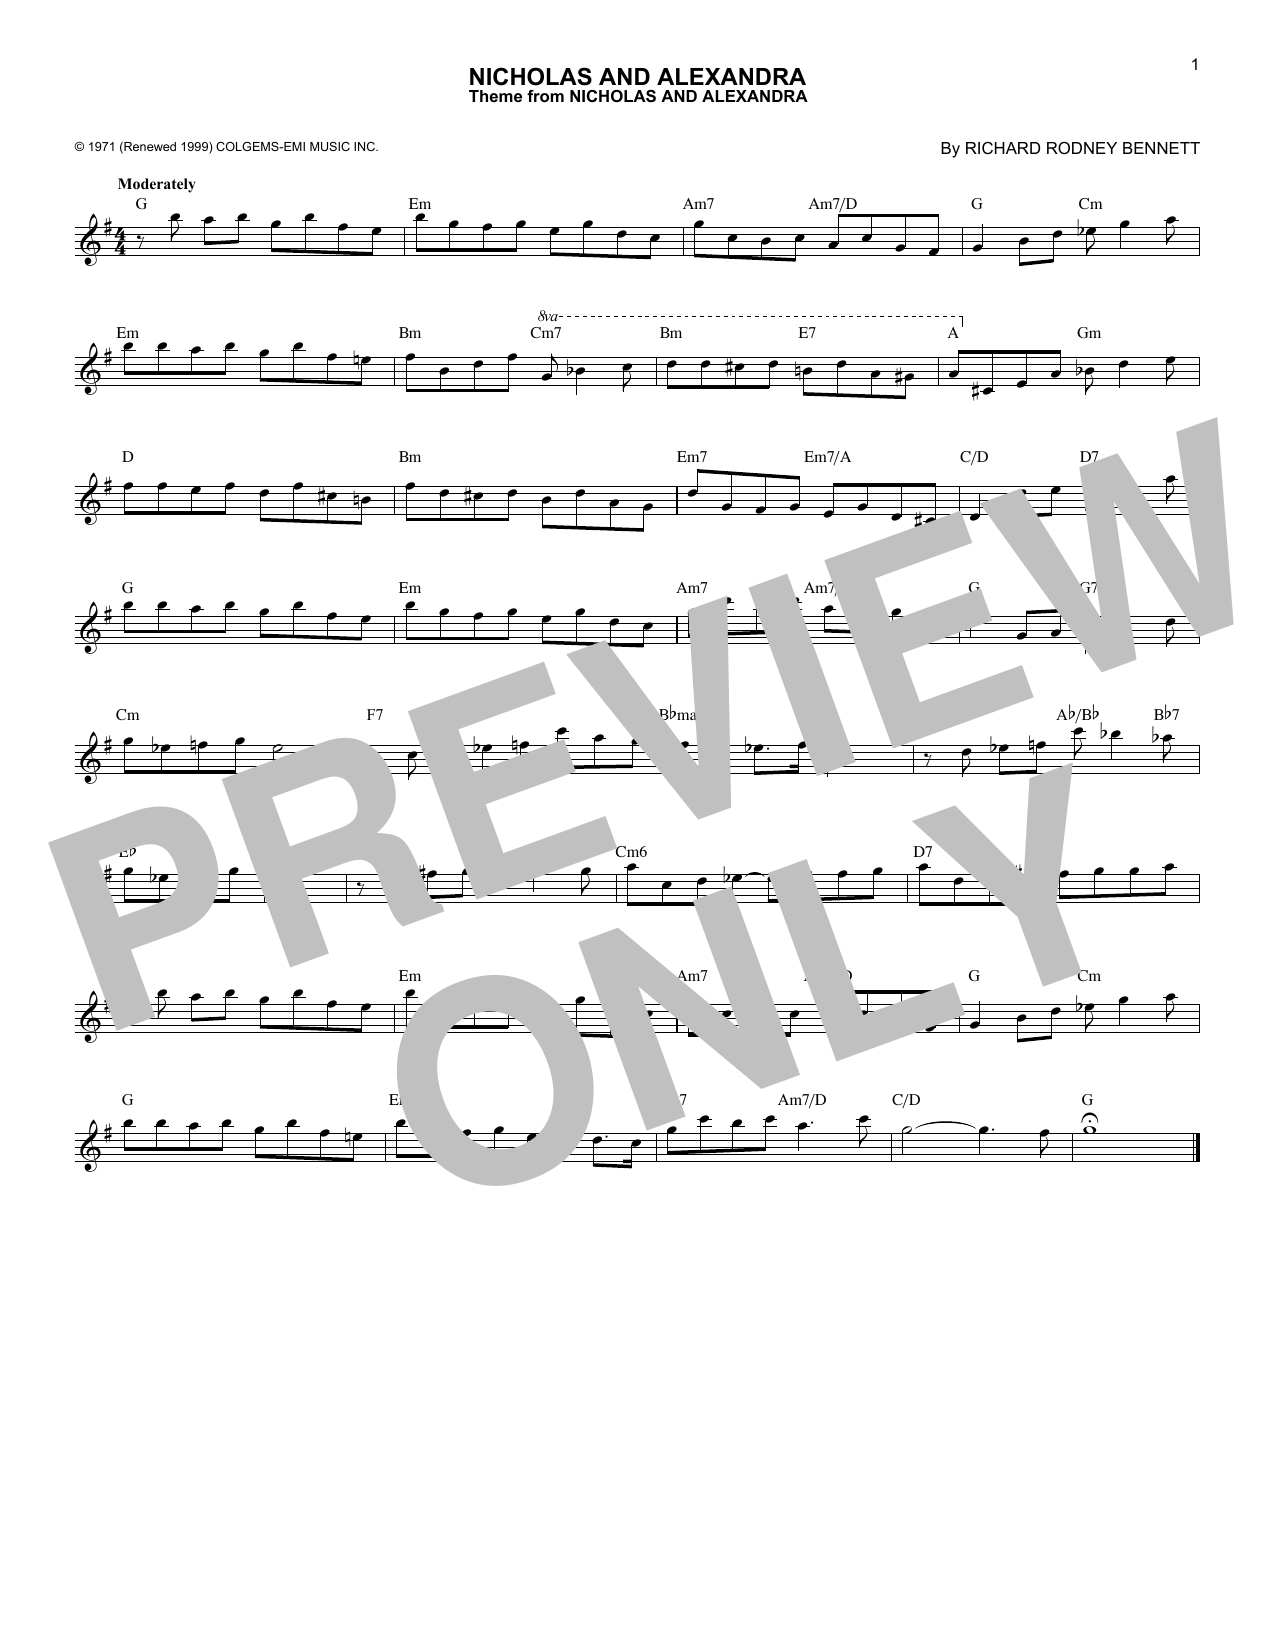 Richard Rodney Bennett Nicholas And Alexandra sheet music notes and chords. Download Printable PDF.